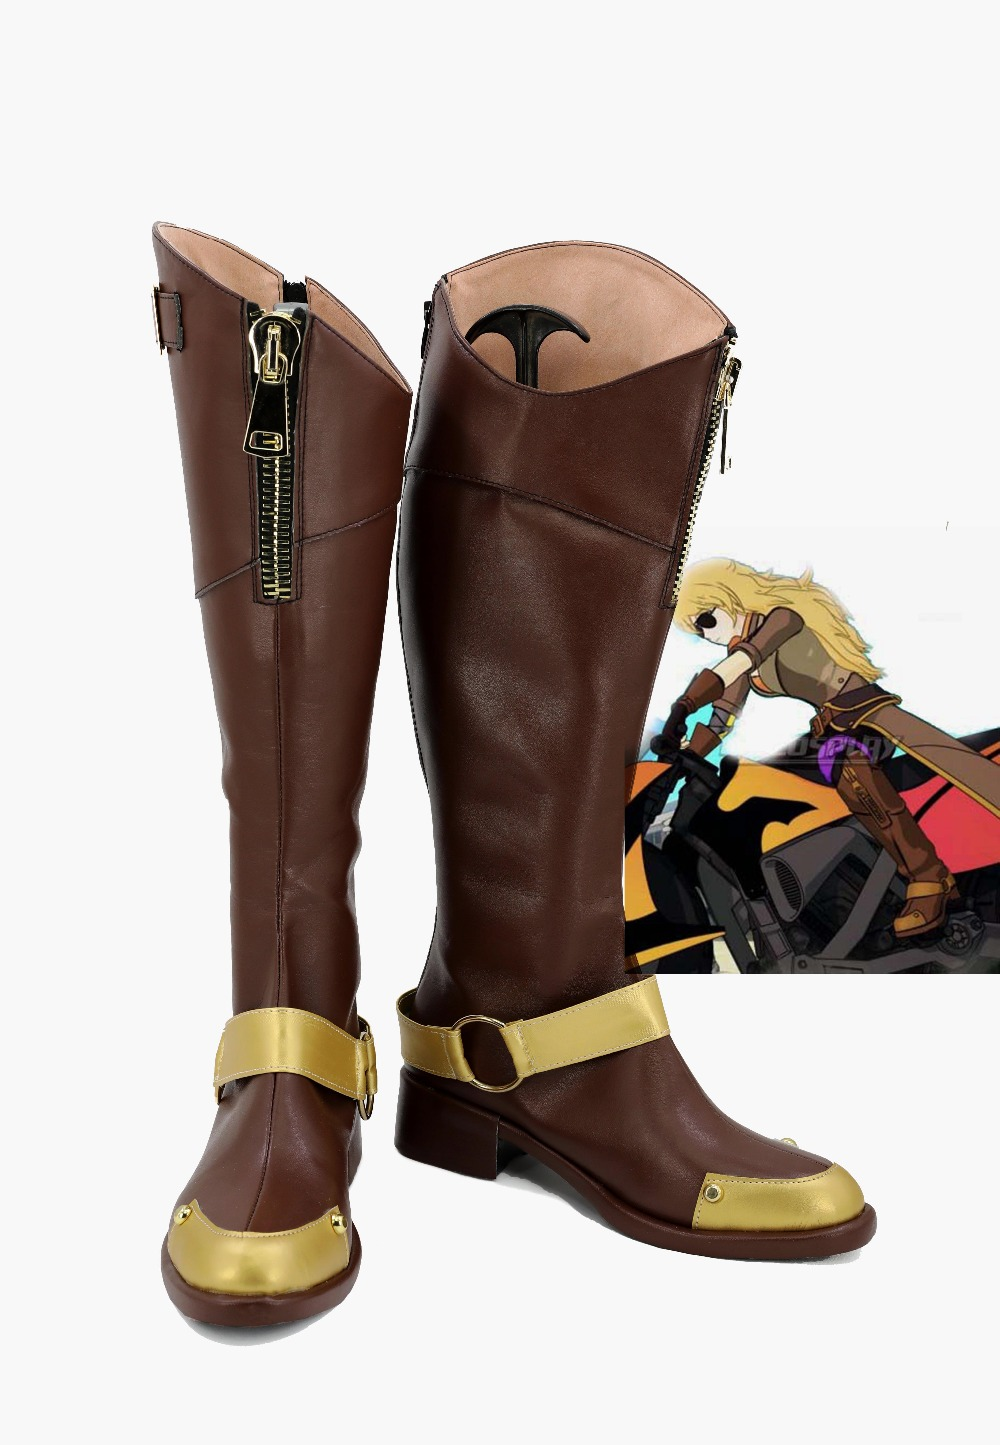 RWBY Shoes Yang Xiao Long Cosplay Shoes Boots Halloween Brown High Boots Custom Made For Halloween Carnival European Size